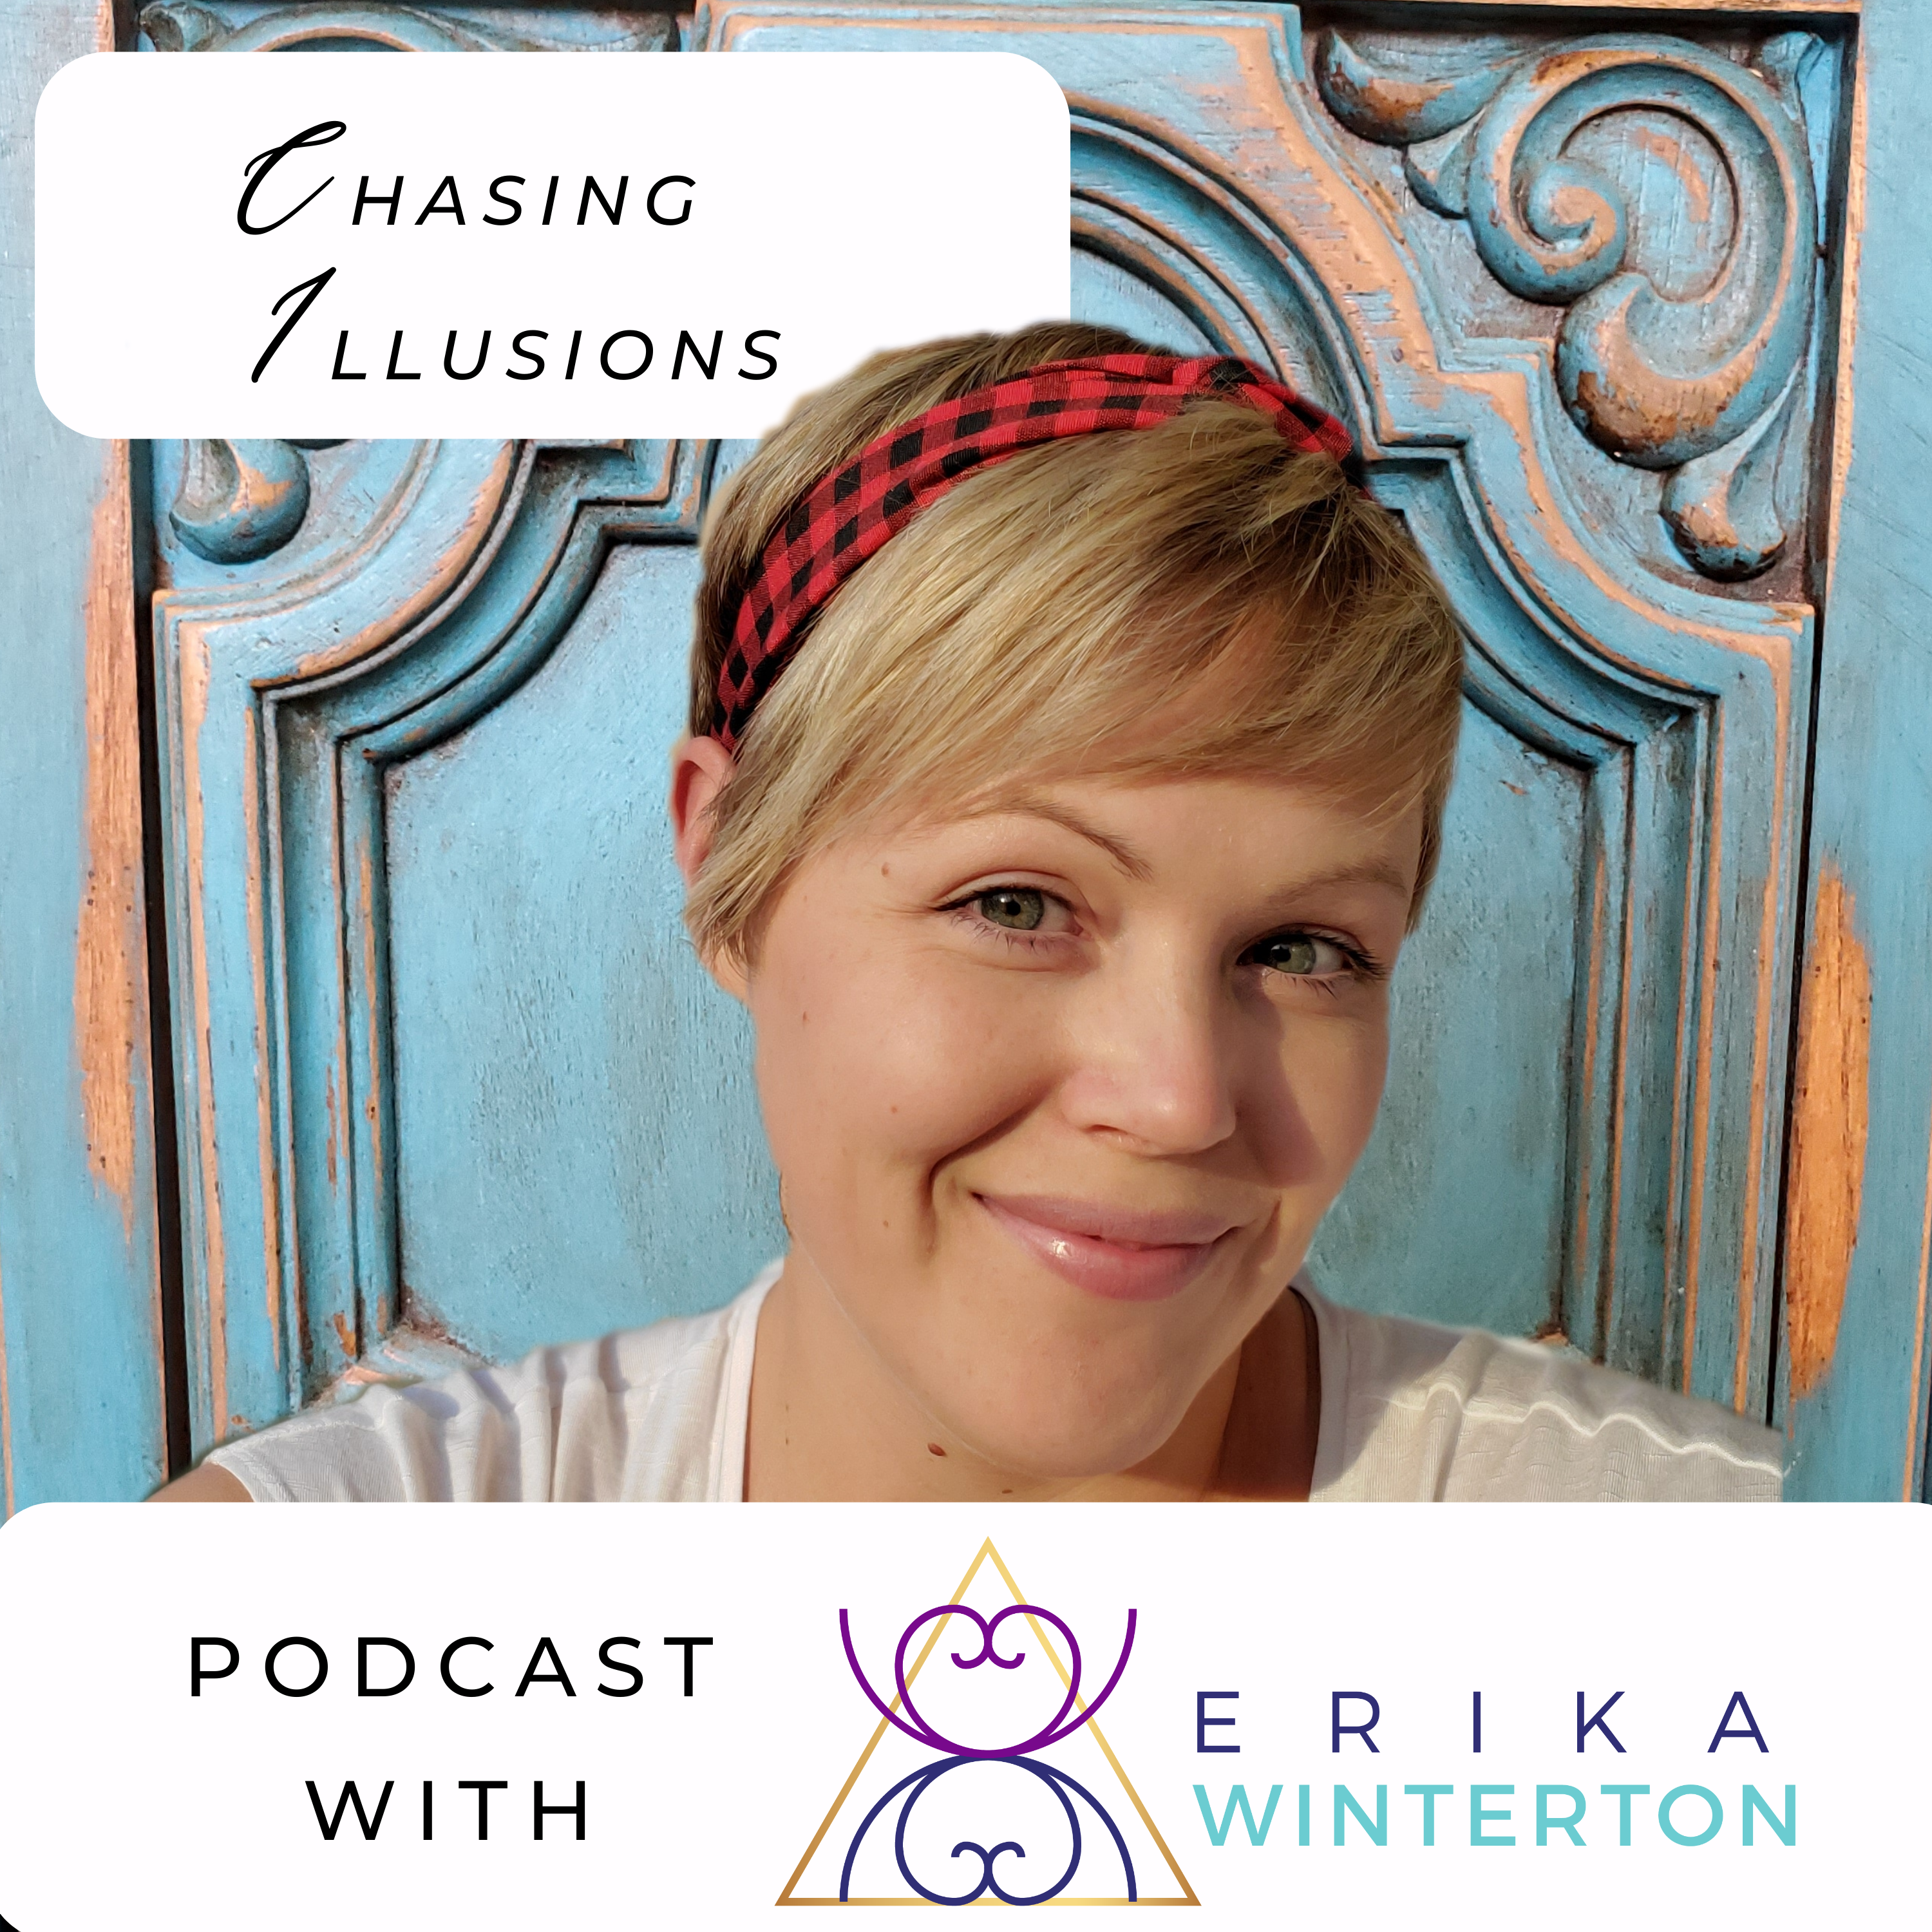 Chasing Illusions Podcast show art